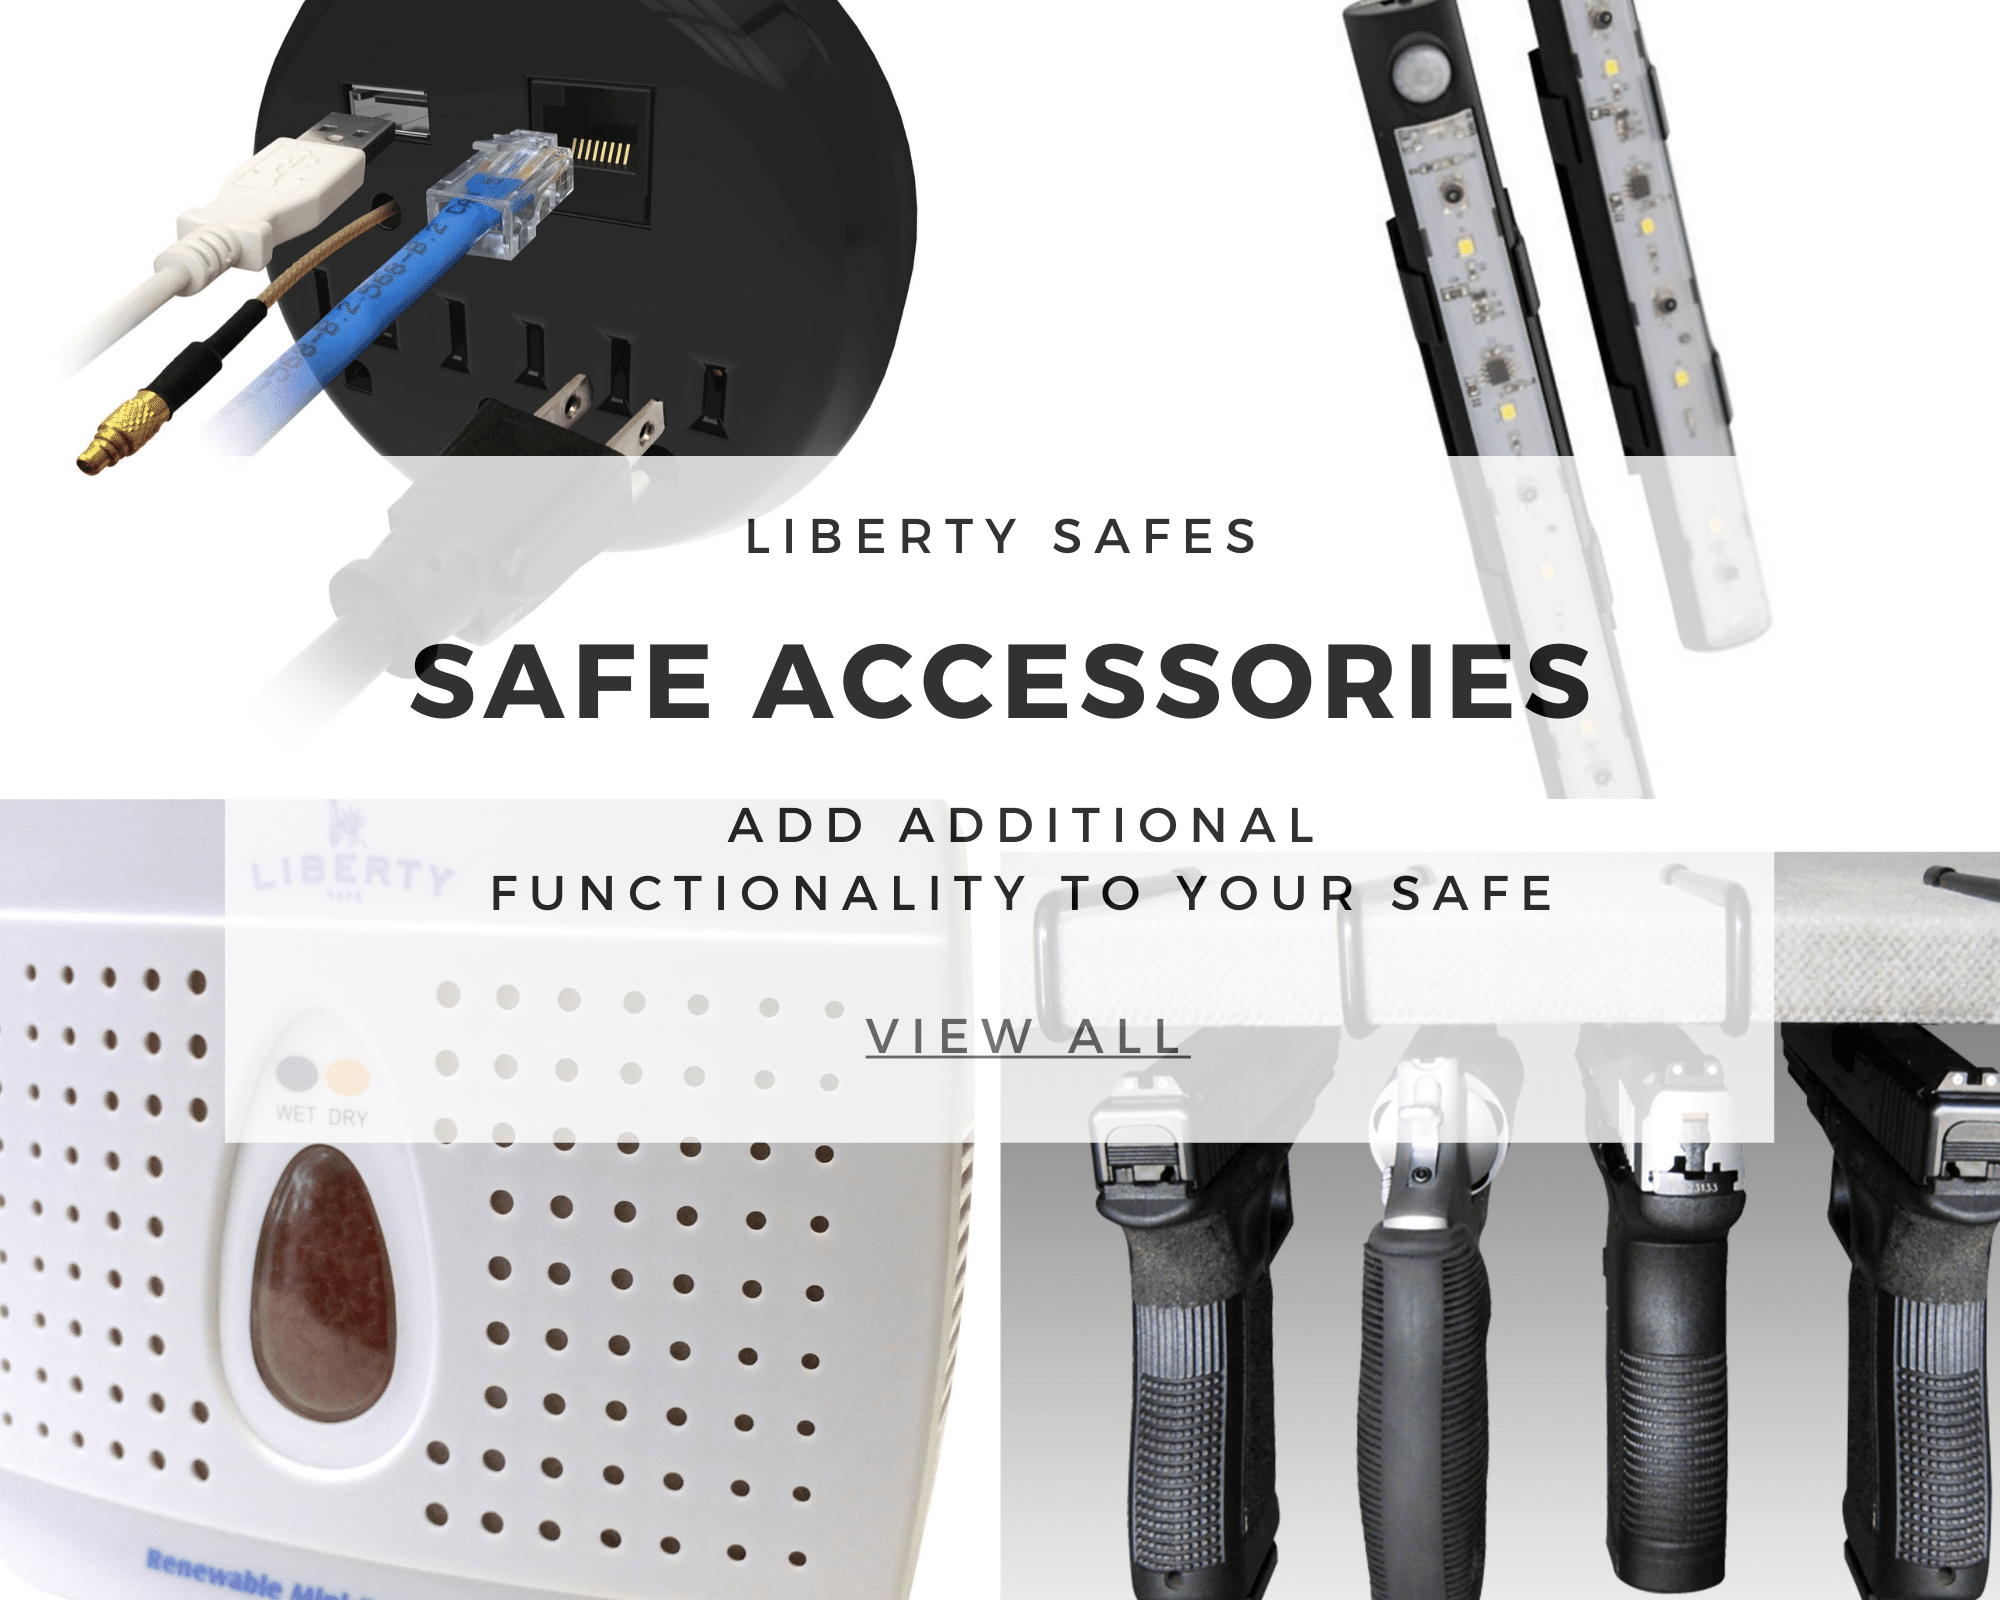 Liberty Safe accessories referencing all Liberty accessories